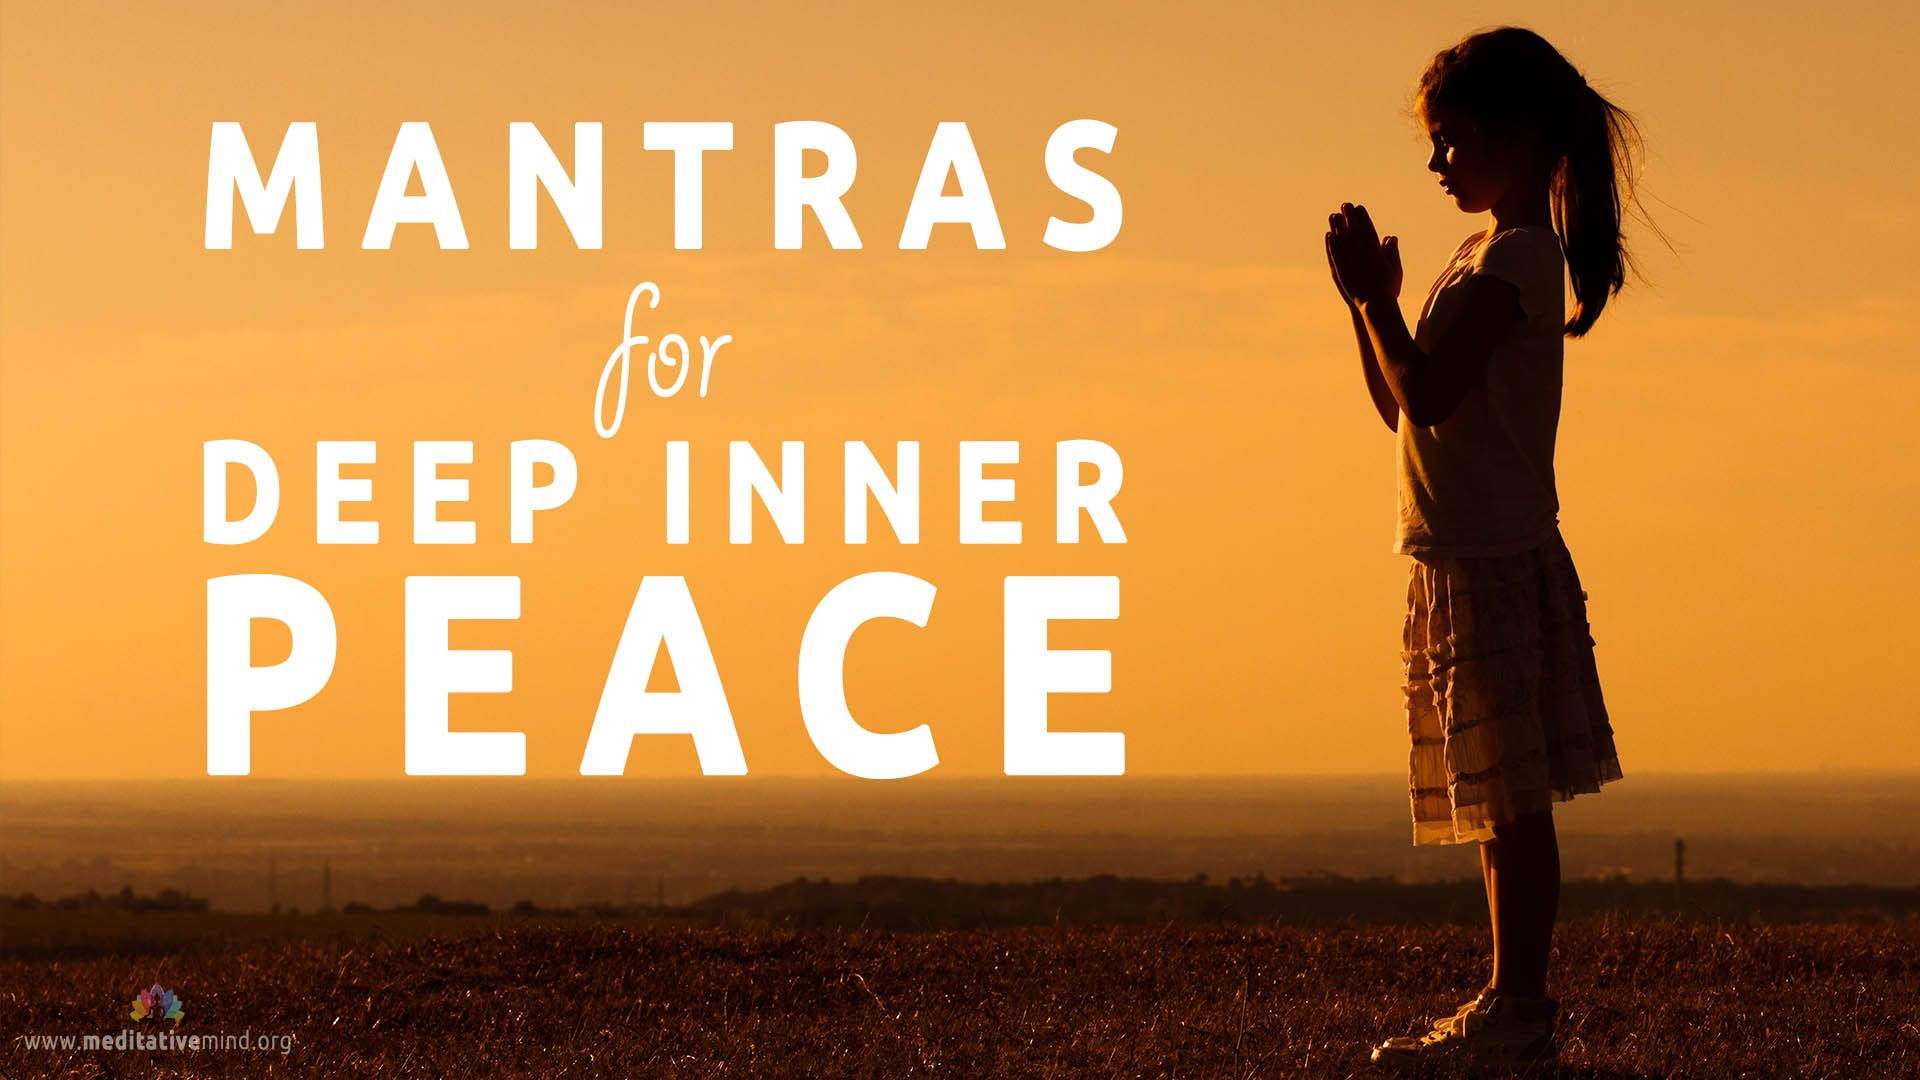 Mantras for Deep Inner Peace | 8 Powerful Mantras - YouTube